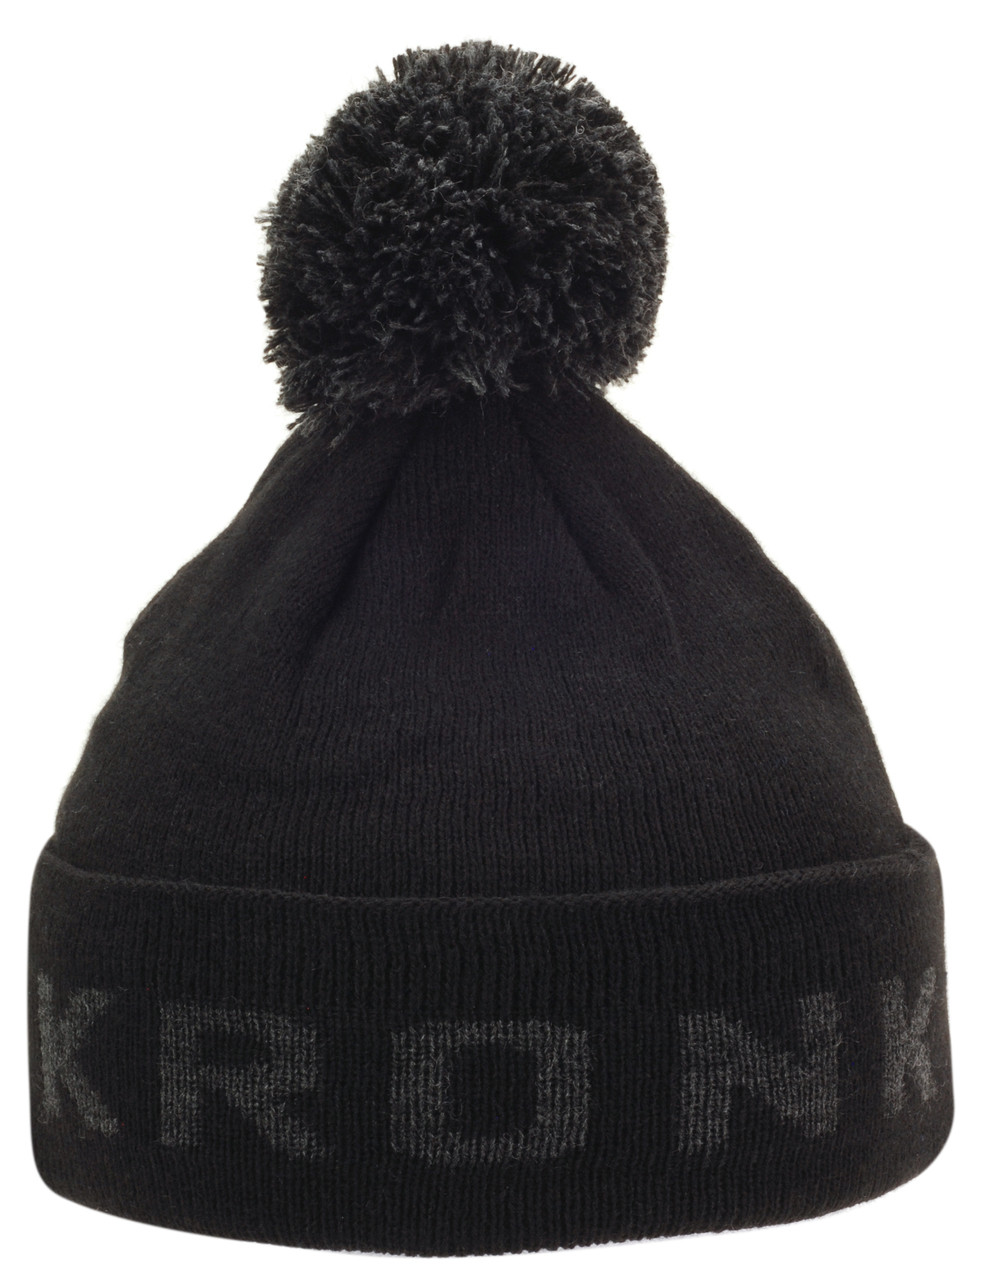 c802e44012f KRONK Detroit Bobble Hat Black with Charcoal knitted logo